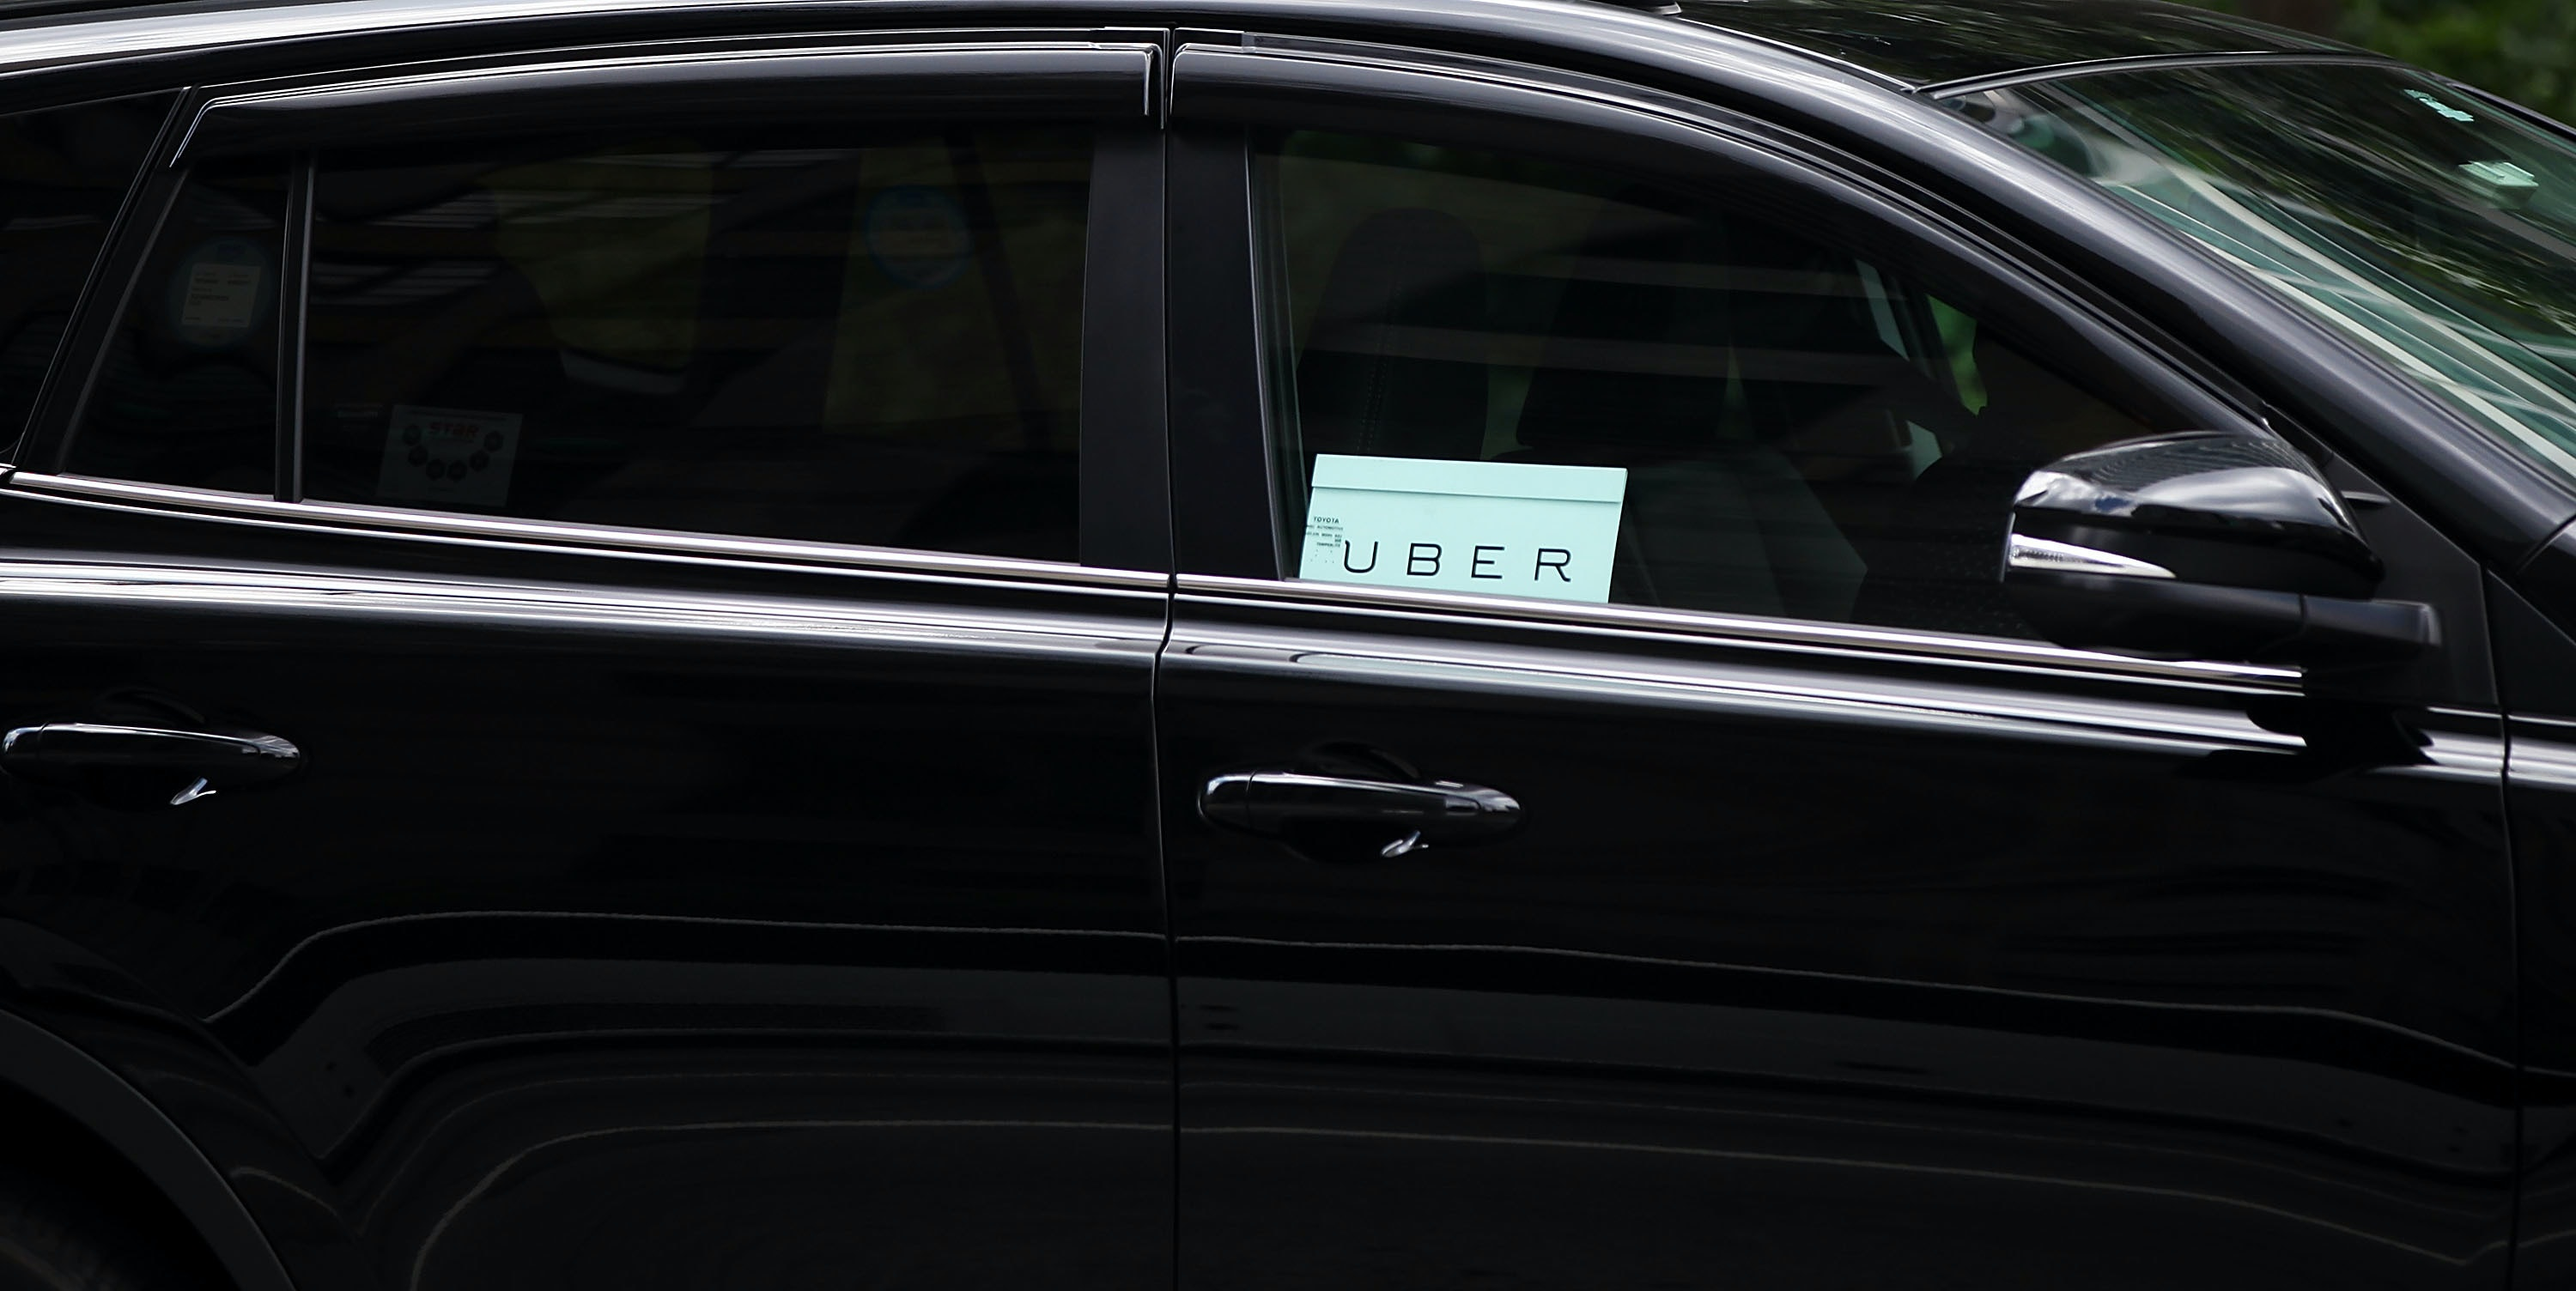 NEW YORK, NY - JULY 20:  An Uber vehicle is viewed in Manhattan on July 20, 2015 in New York City. New York's City Council has proposed two bills last month to limit the number of new for-hire vehicles, as well as to study the rapidly rising industry's impact on traffic. Uber has responded in an open letter arguing that its 6,000 Uber cars out during an average hour are a small part of the city's overall traffic. In cities across the globe Uber has upended the traditional taxi concept with many drivers and governments taking action against the California based company.  (Photo by Spencer Platt/Getty Images)